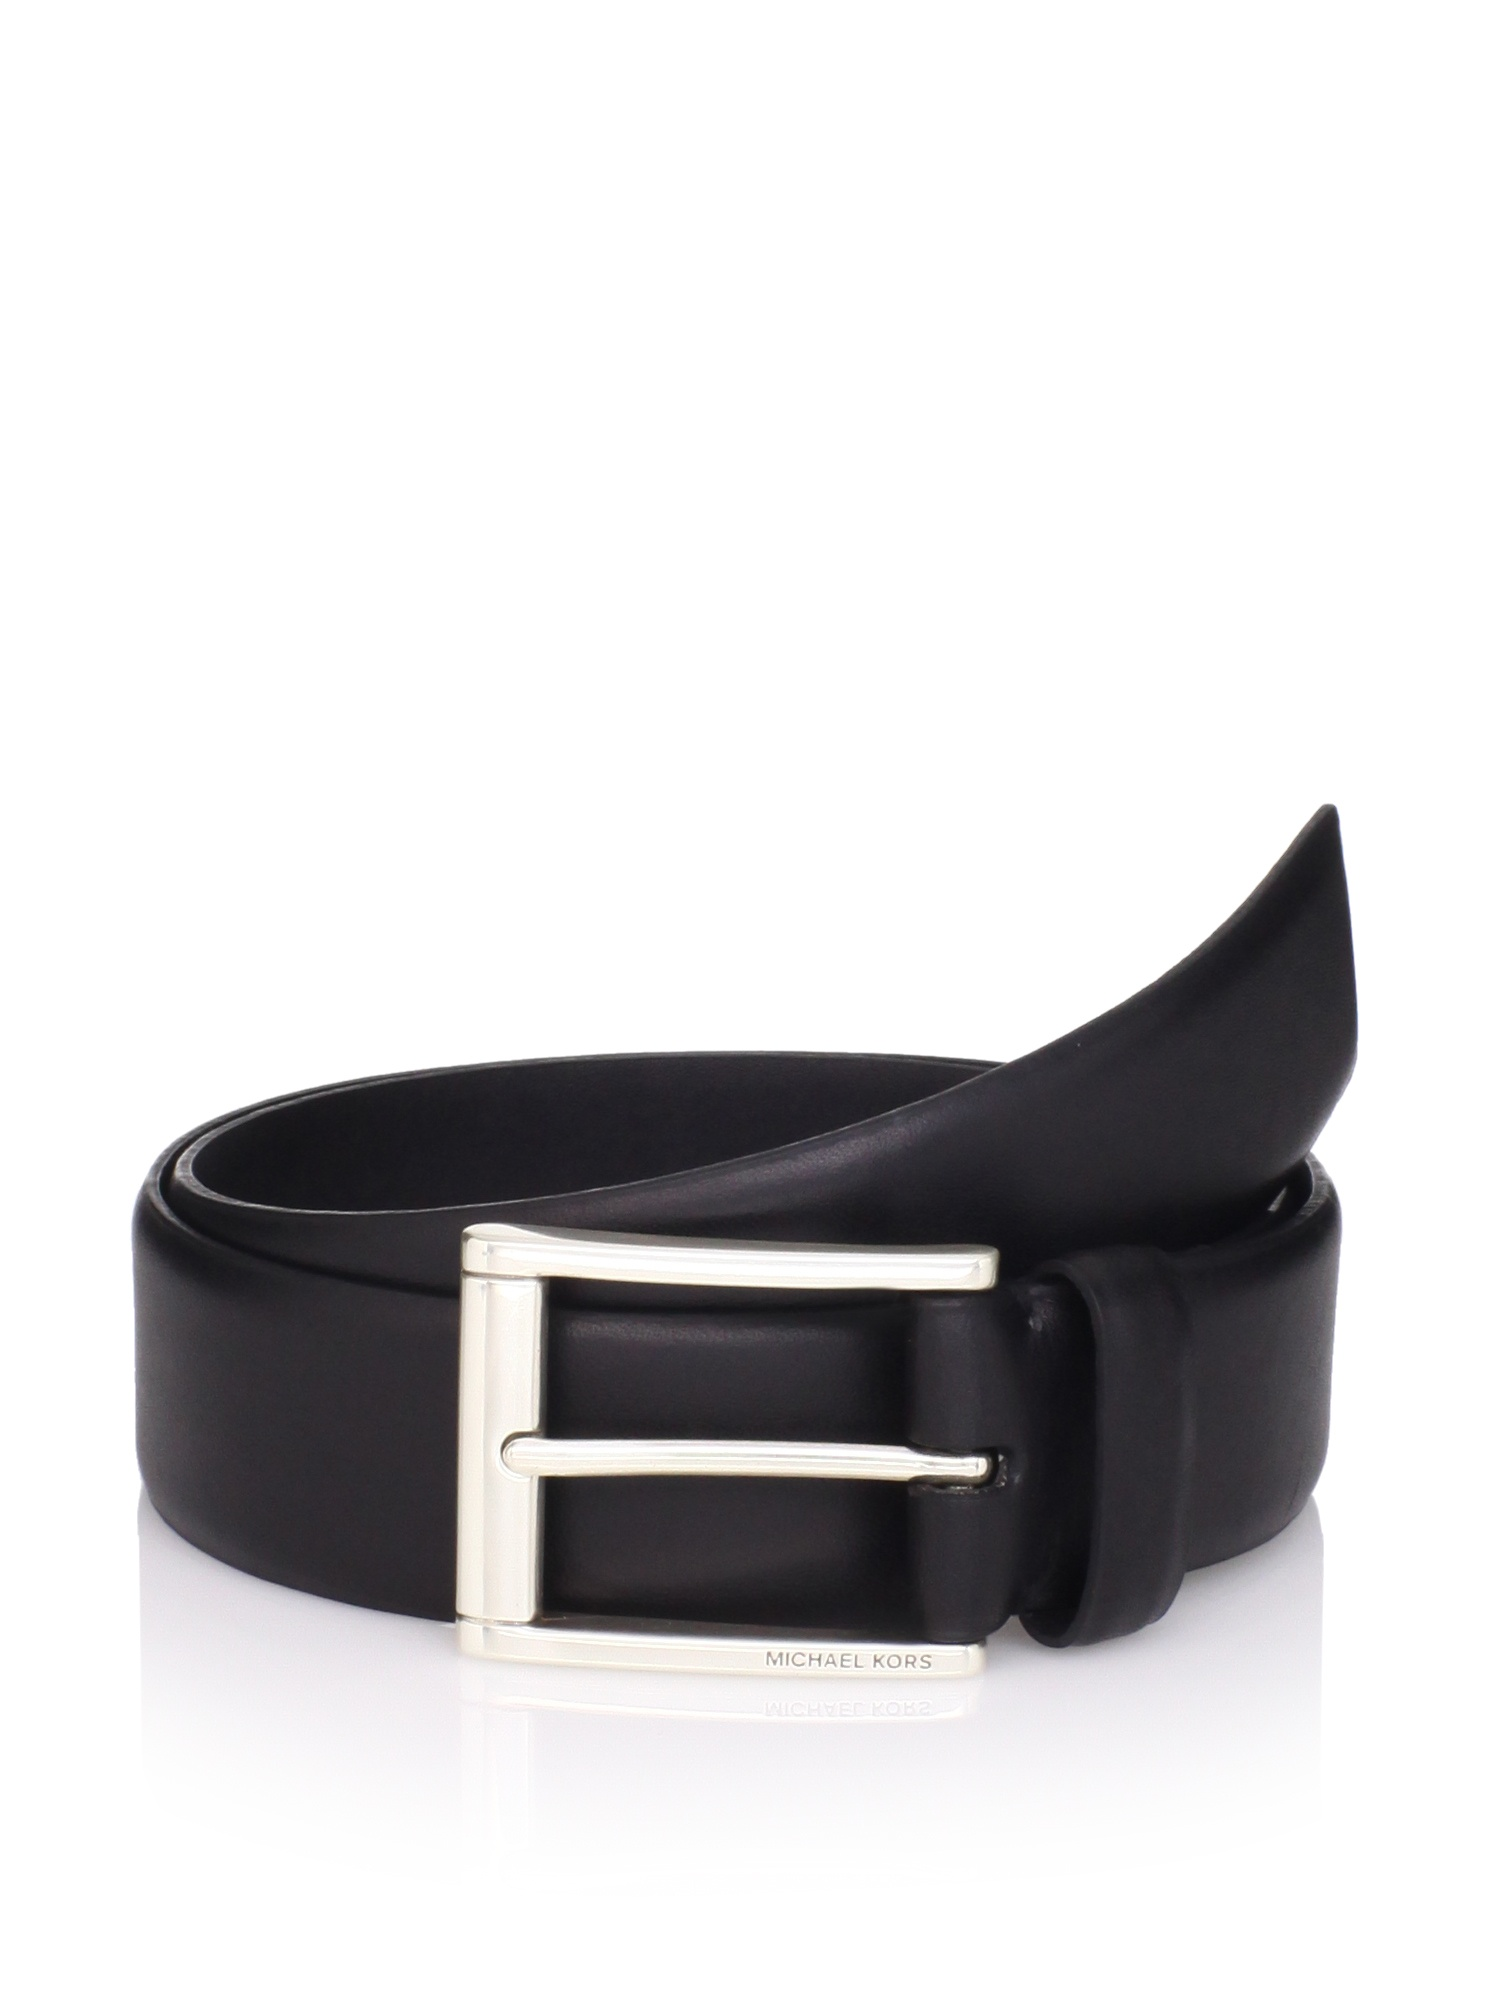 Michael Kors Men's Leather Belt (Black)